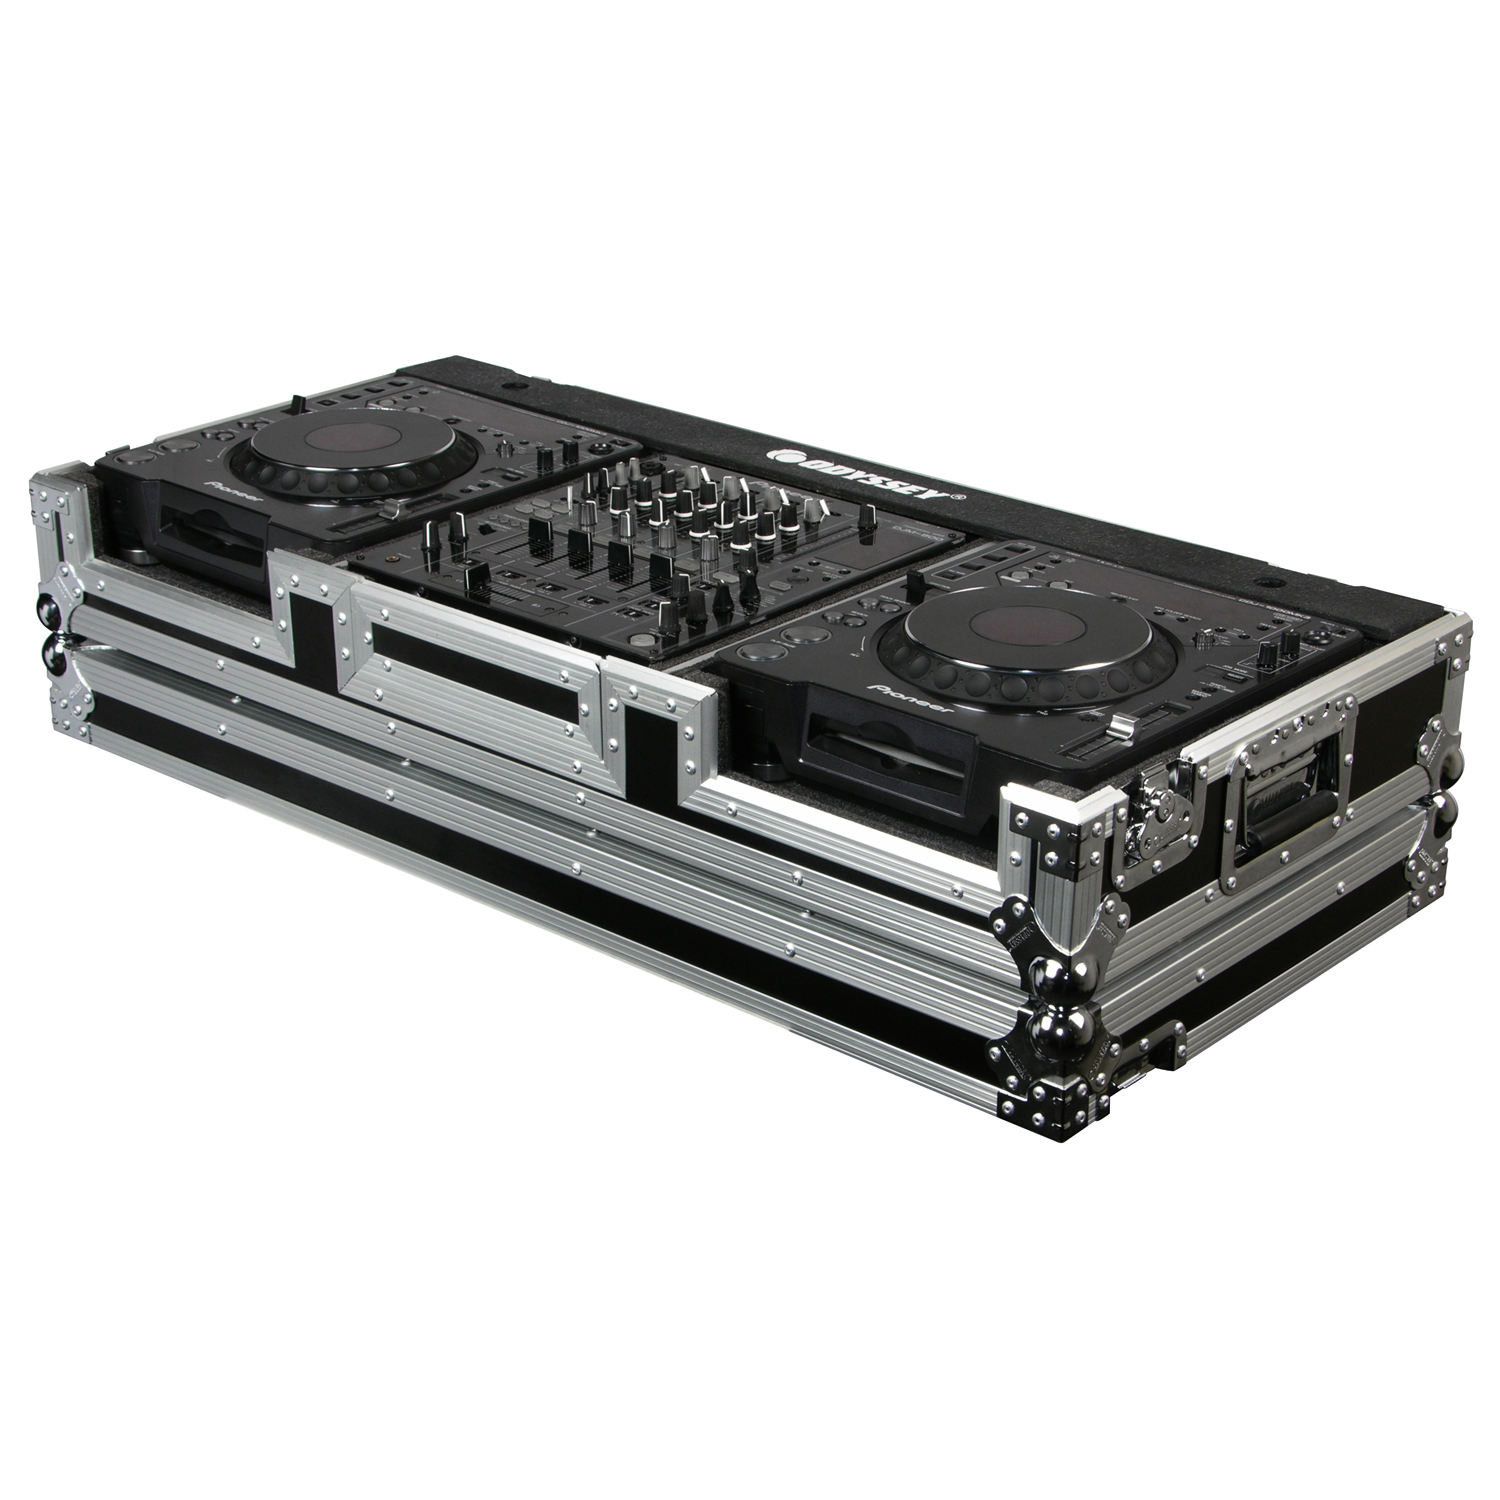 Universal 12 inch format dj mixer and two large format media players coffin case